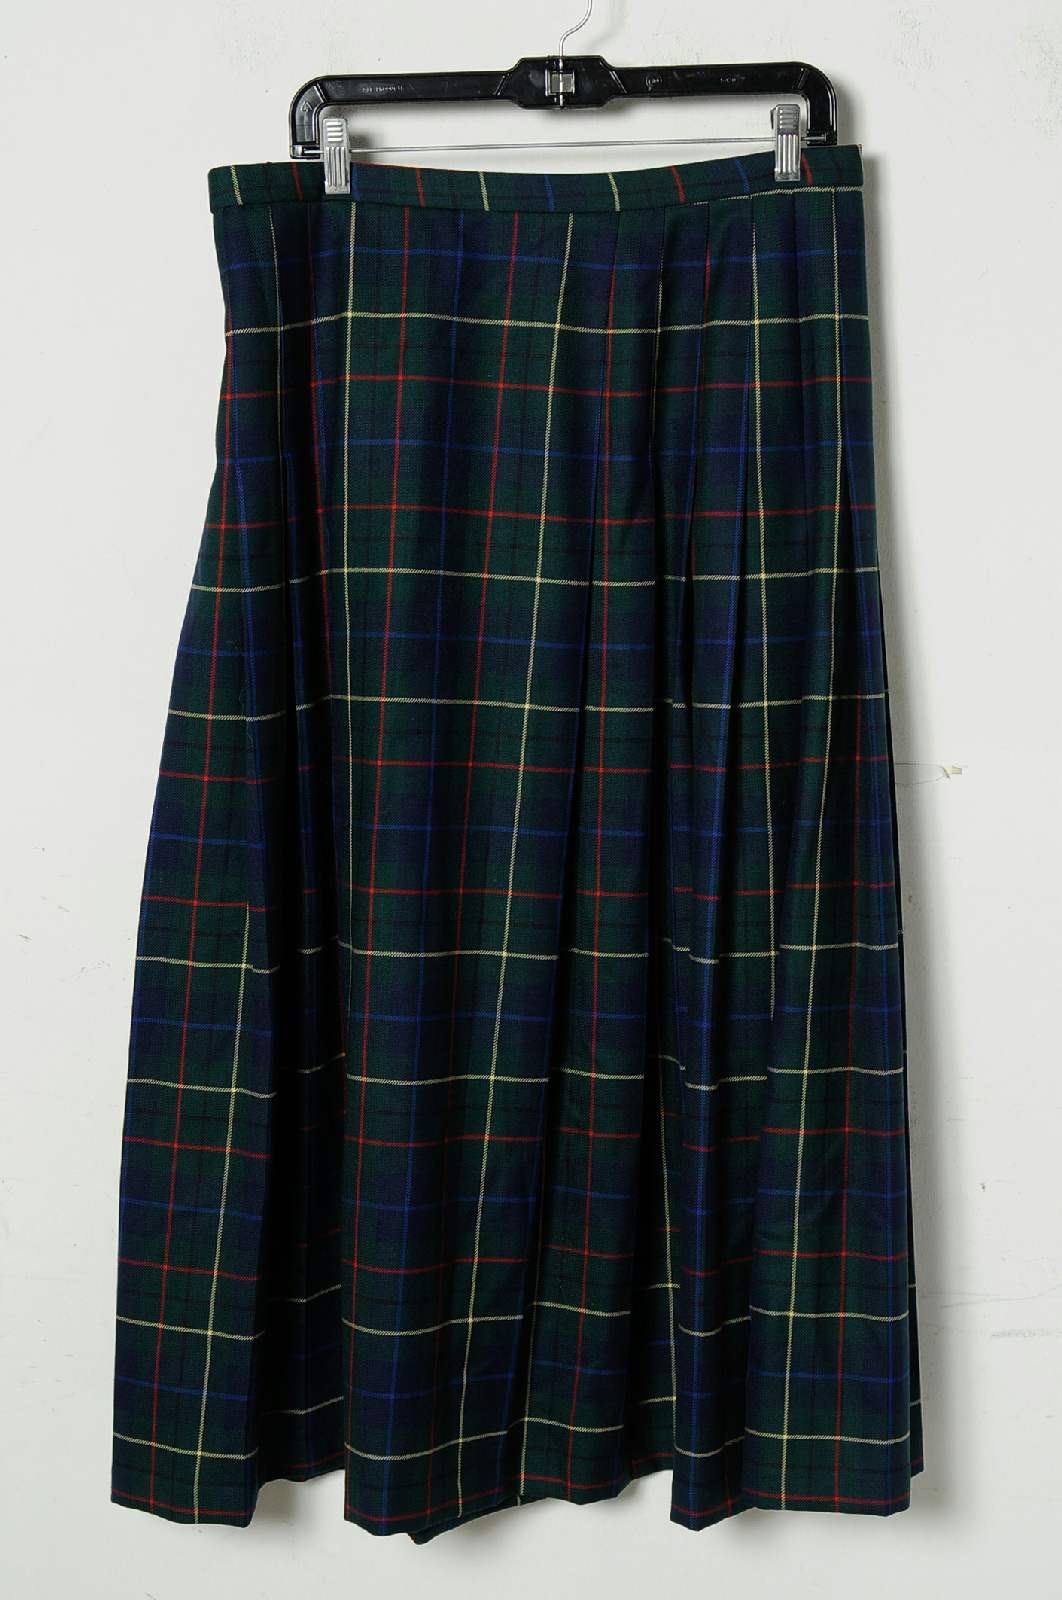 Our large selection of girl's plaid pleated skirts in multiple sizes are comfortable and essential for any school uniform. Shop at French Toast today!